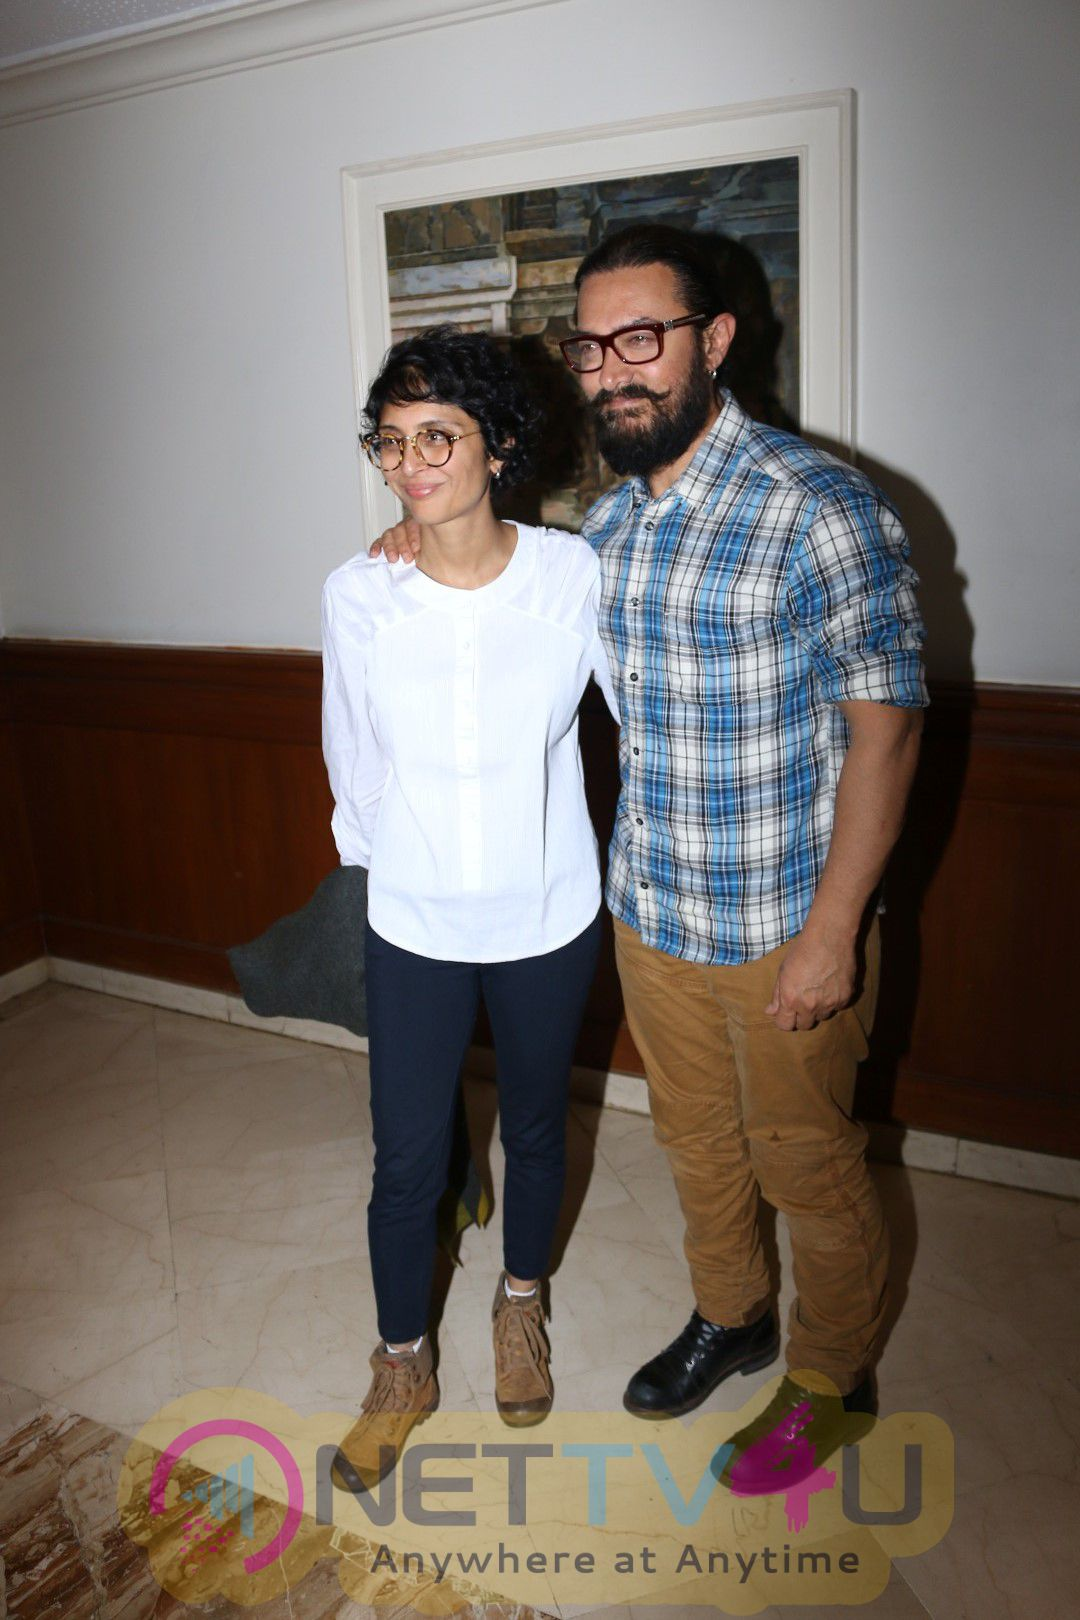 Announcement Of Satyamev Jayate Water Cup 2 With Aamir Khan, Kiran Rao & Devendra Fadnavis Photos